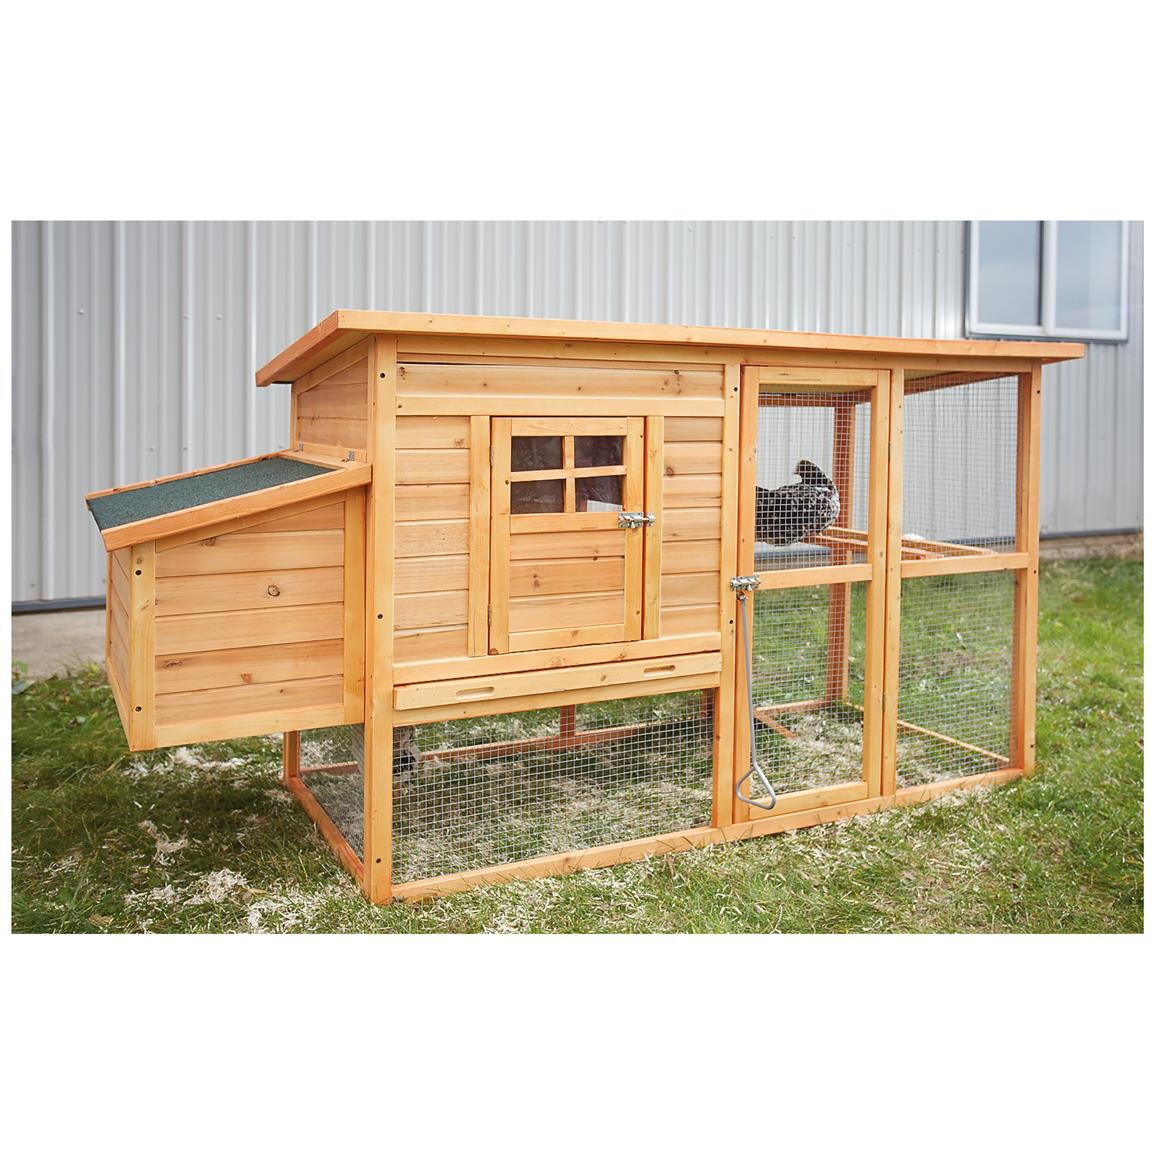 CASTLECREEK Backyard Chicken Coop